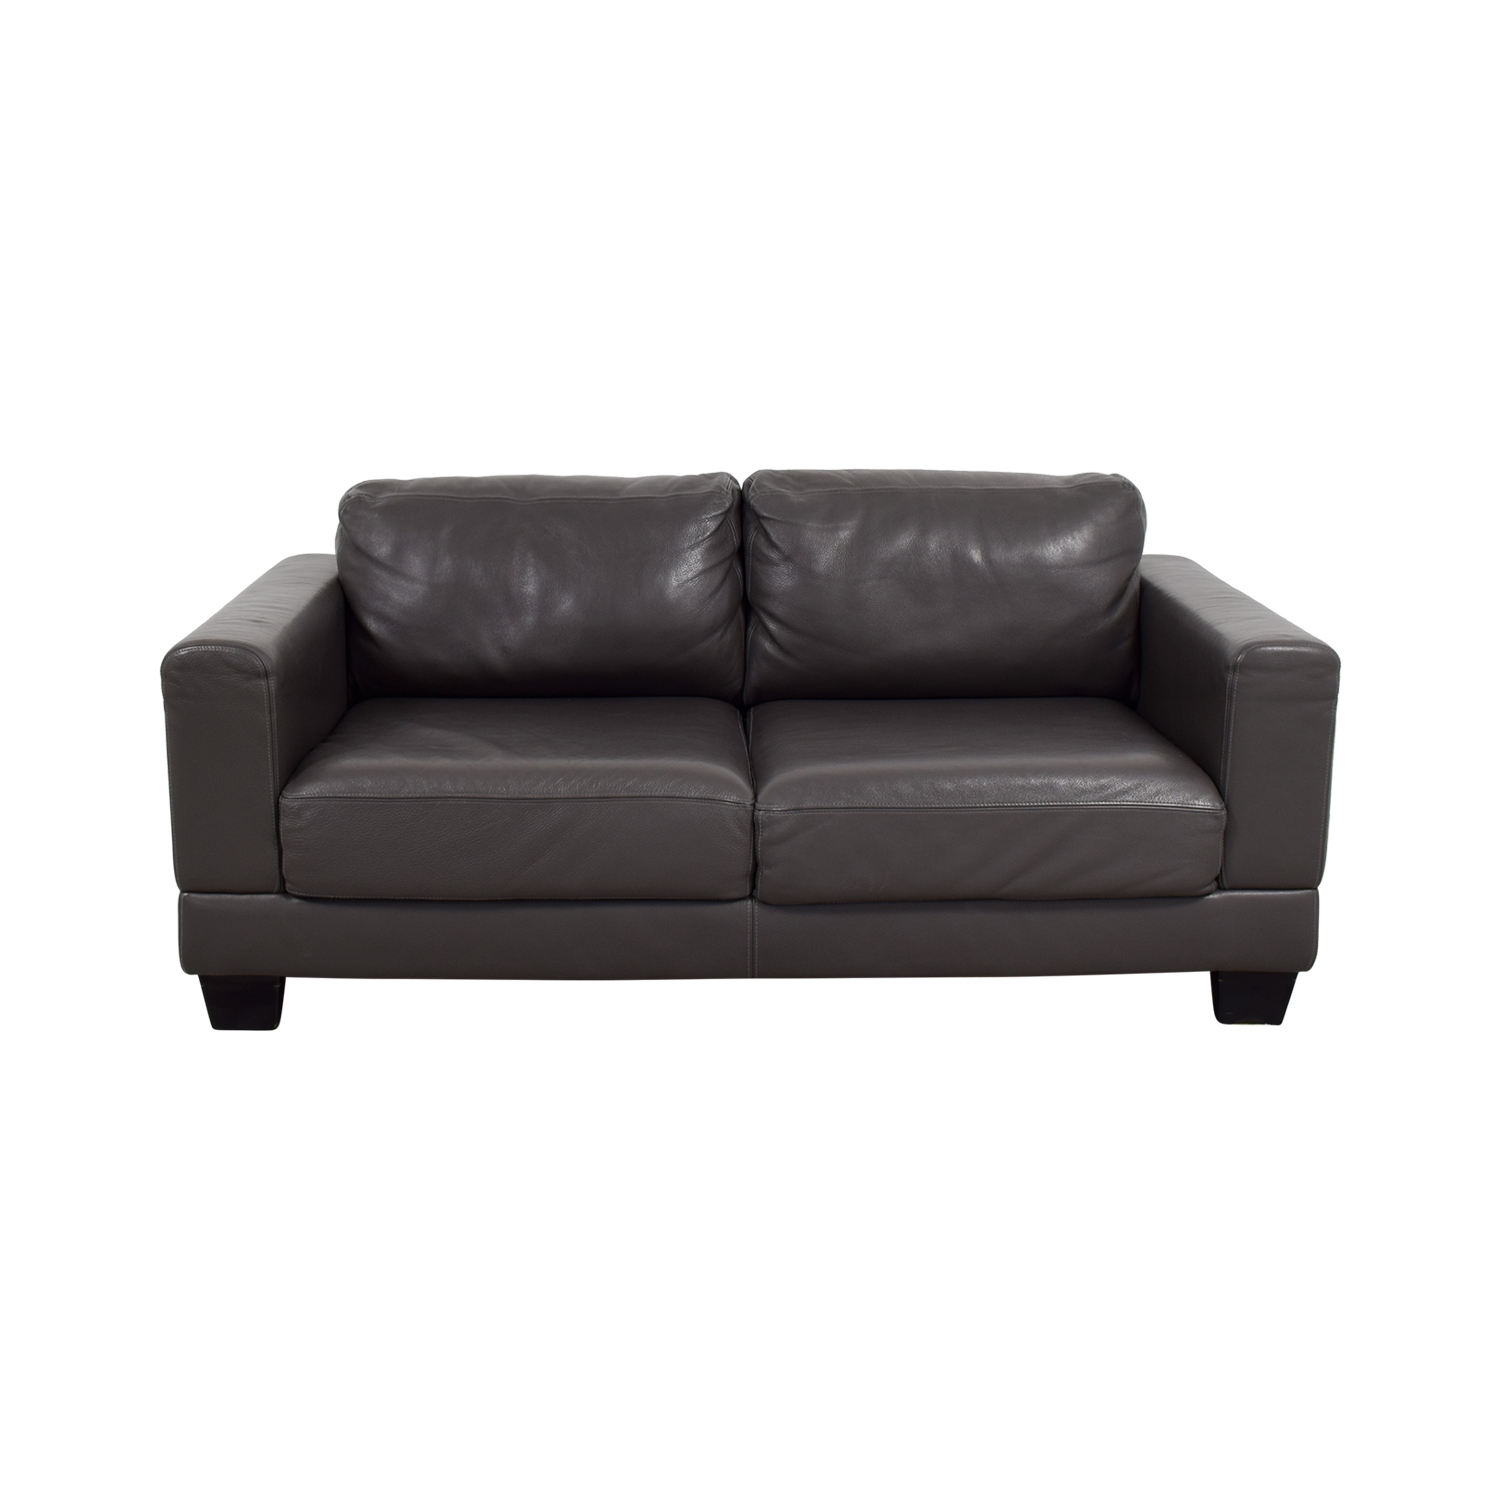 Gray Two-Cushion Leather Loveseat Sofas